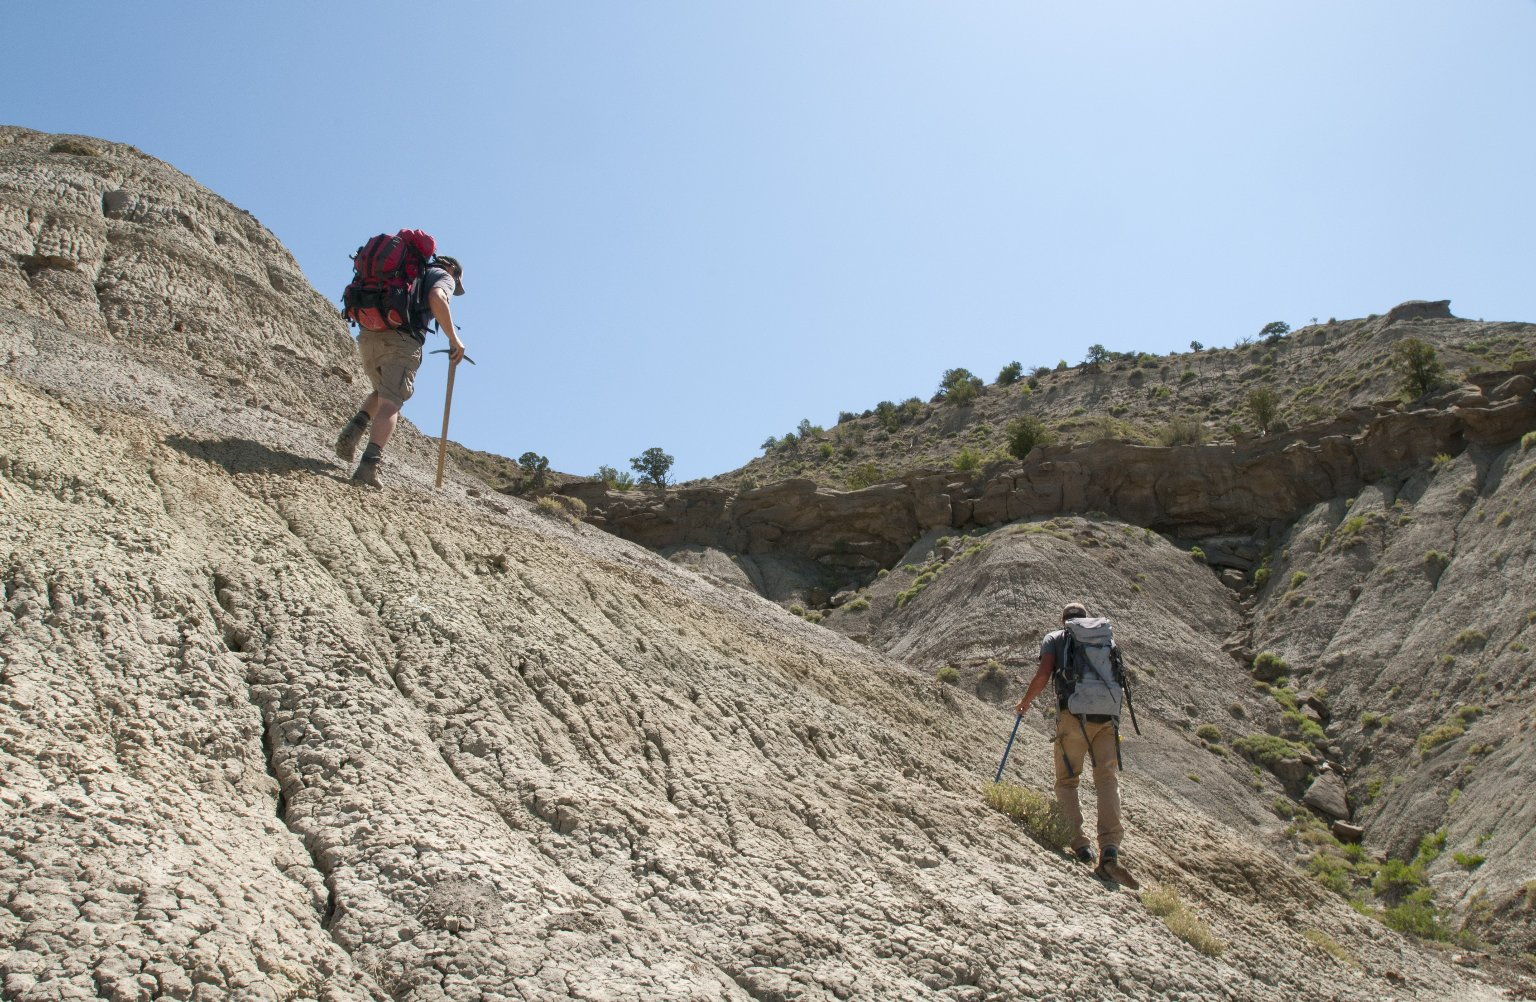 Dr. Ian Miller (L) and Dr. Joseph Sertich(R) prospect for specimens in the Kaiparowits Plateau.